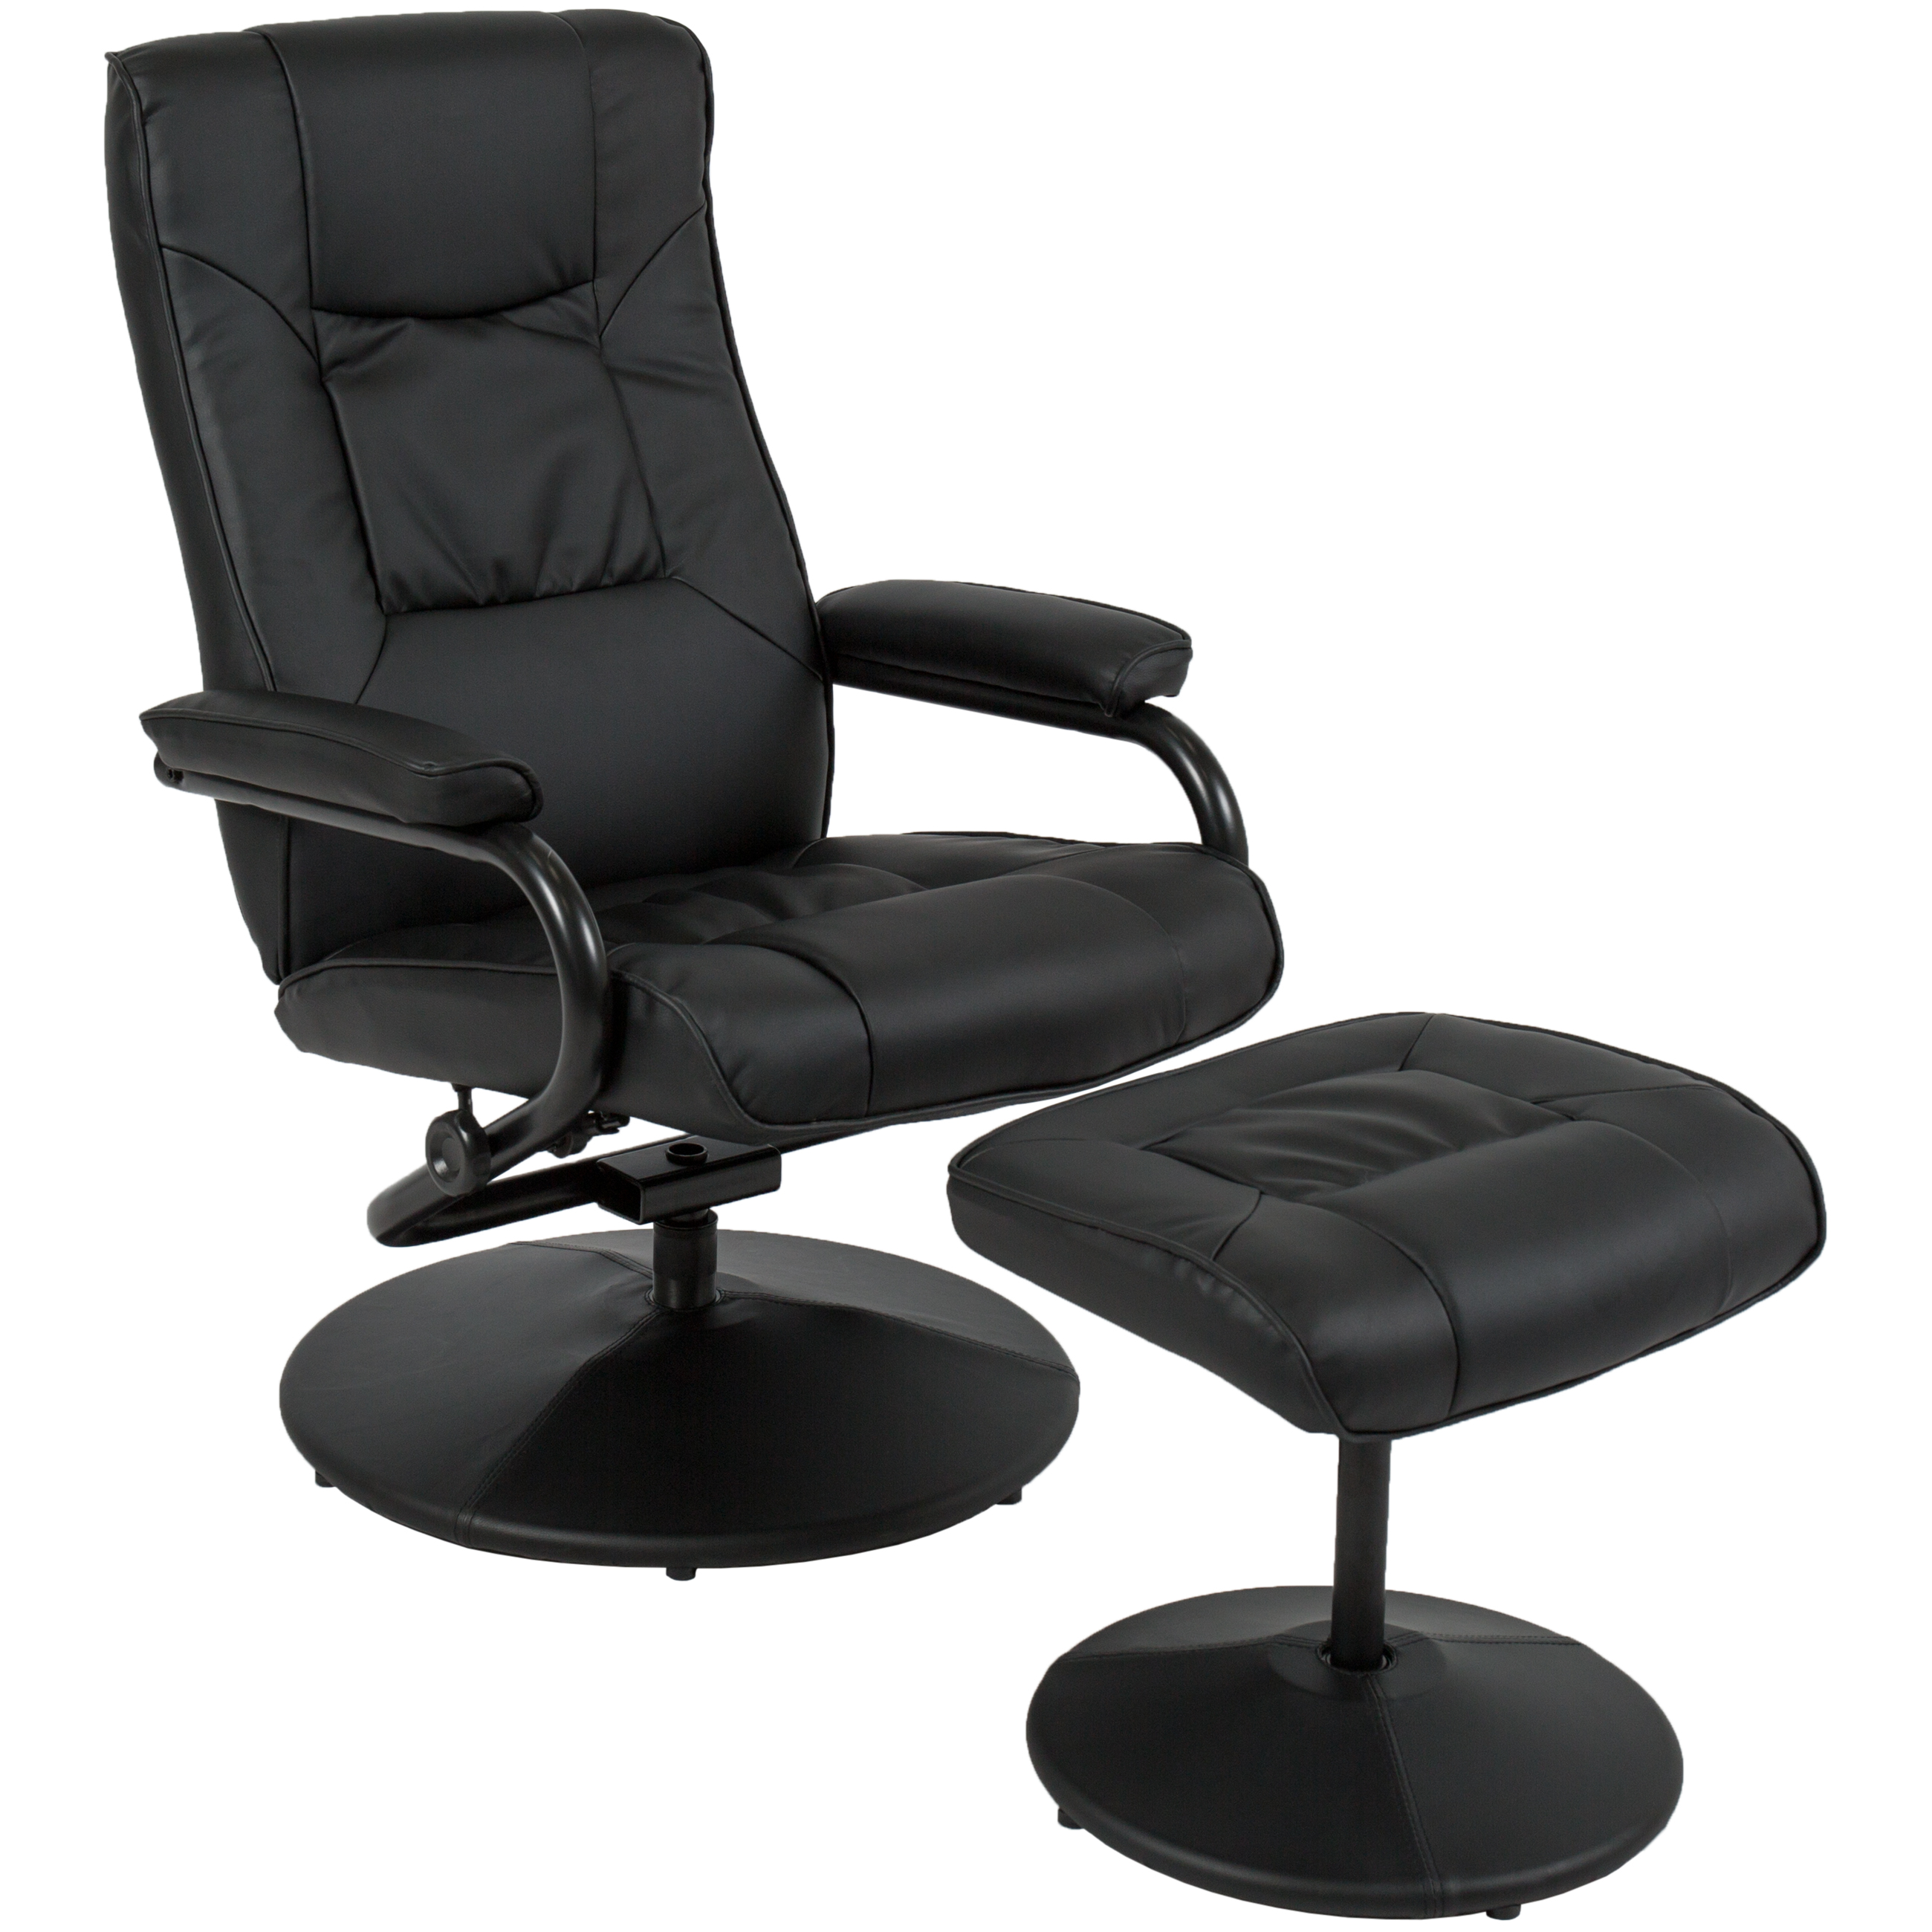 Best Choice Products Leather Swivel Recliner Chair w/ Ottoman Stool (Black)  sc 1 st  Walmart & Best Choice Products Leather Swivel Recliner Chair w/ Ottoman ... islam-shia.org